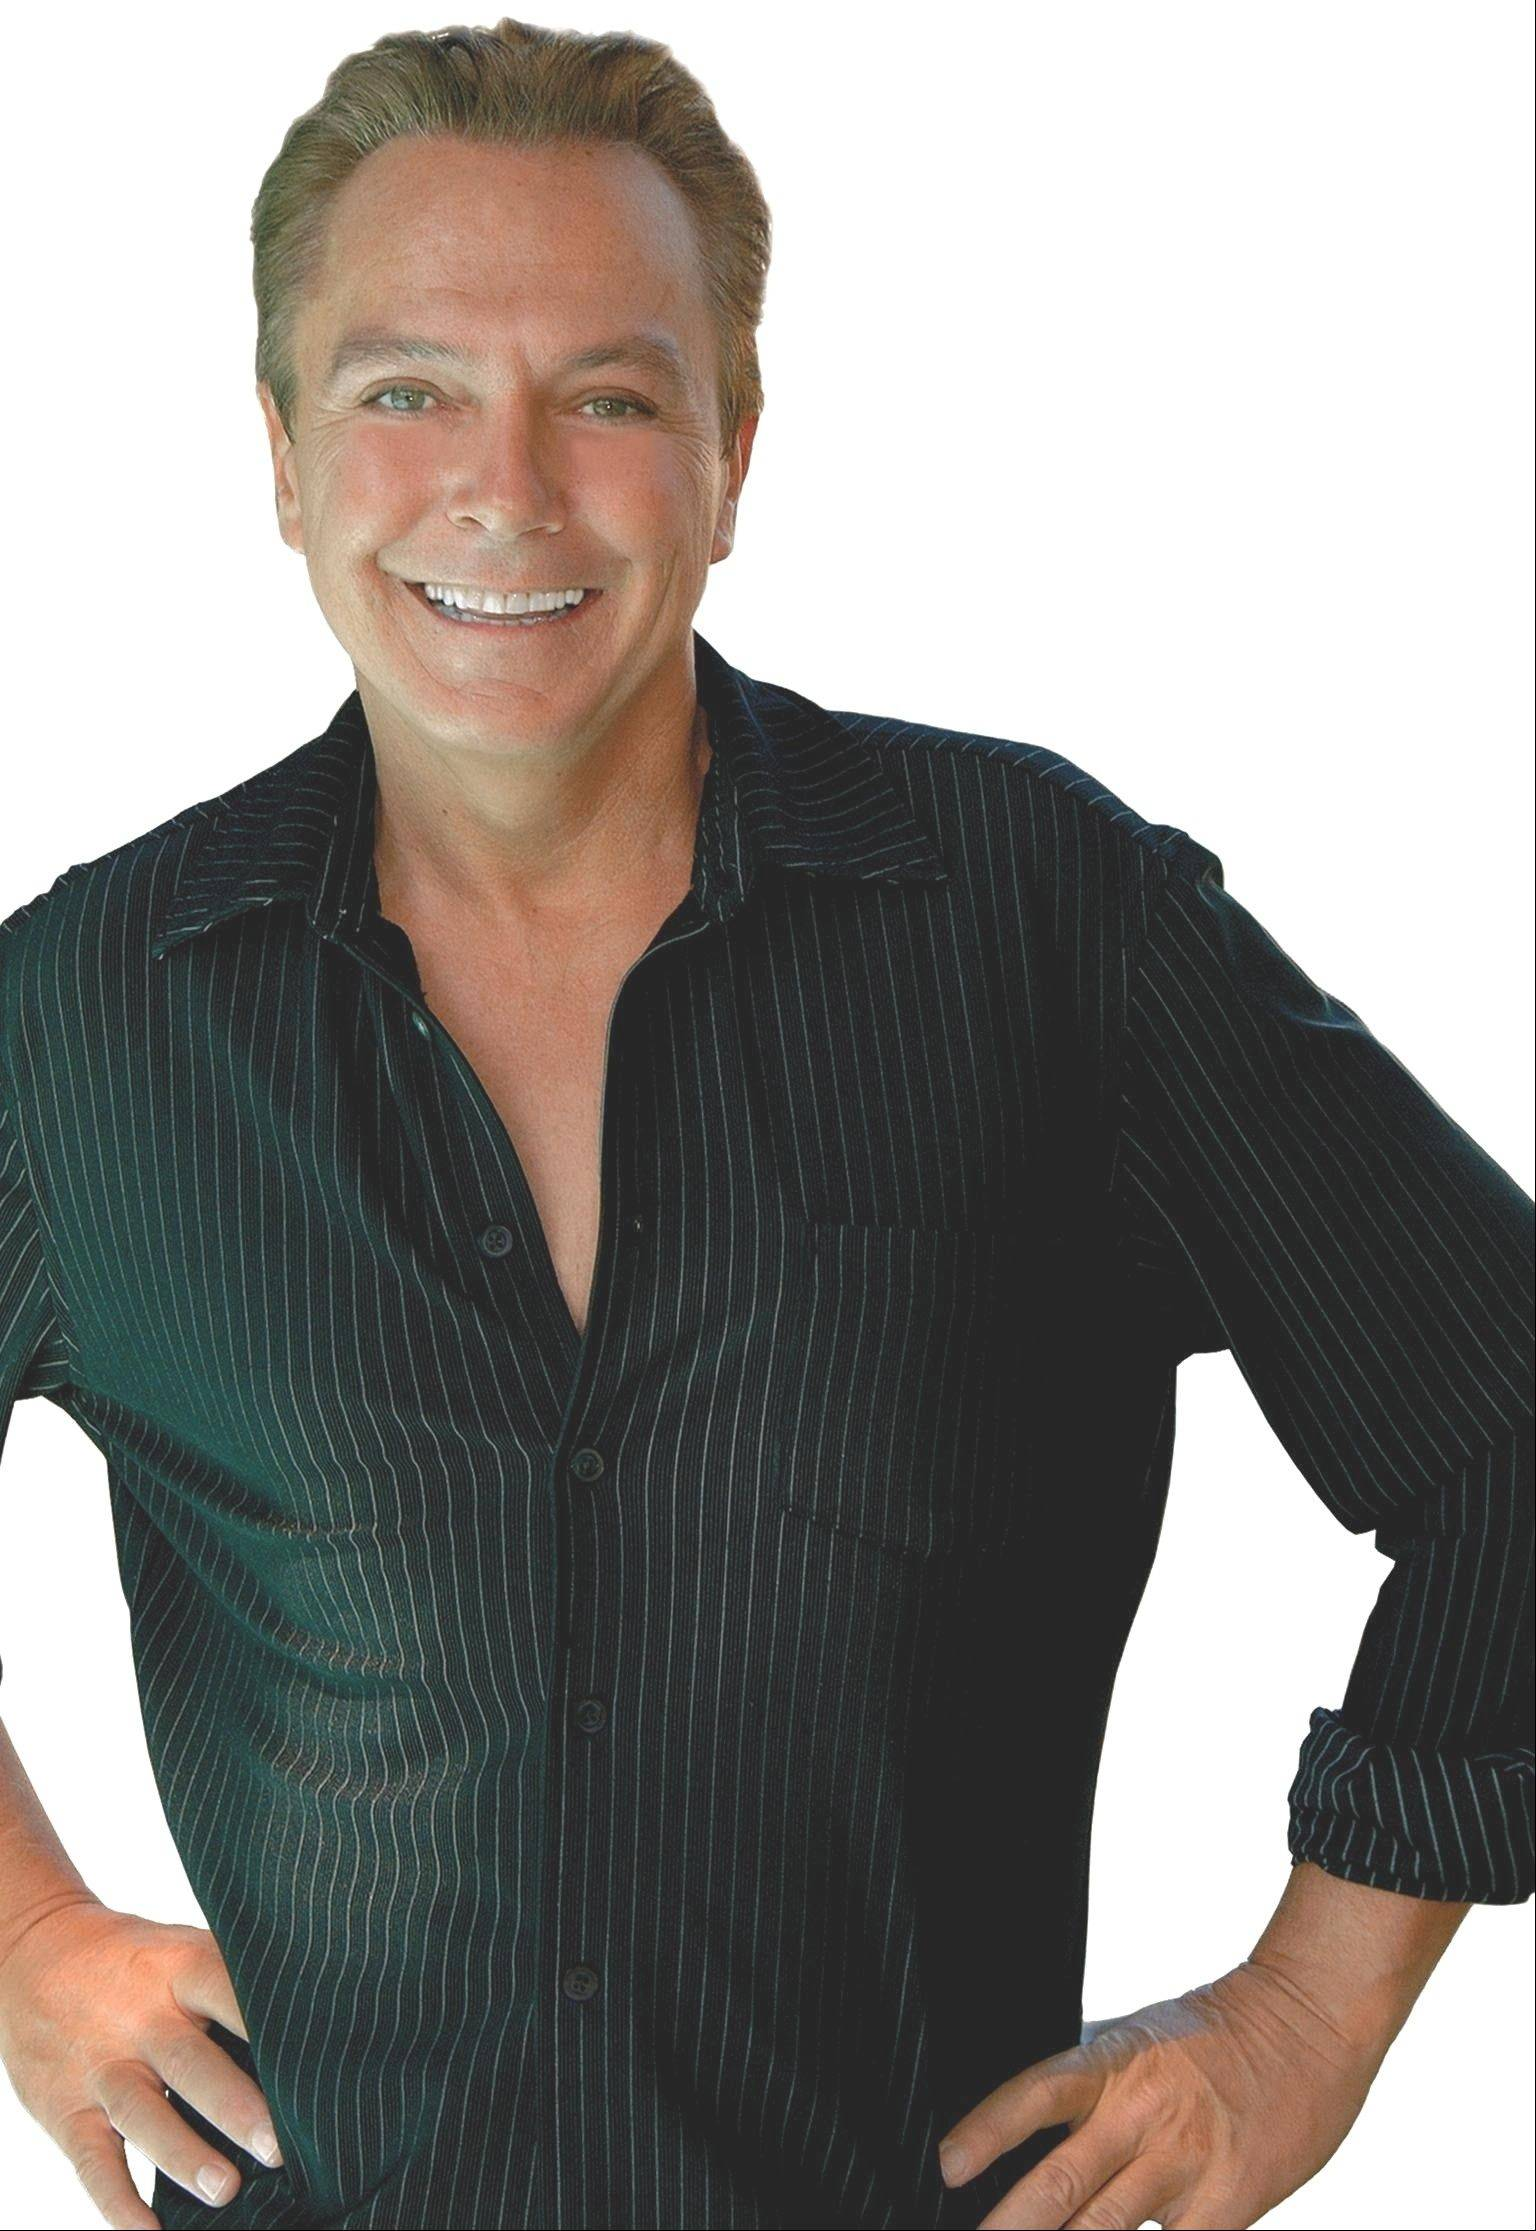 Singer David Cassidy headlines at 9:30 p.m. Saturday, July 14, at the annual Des Plaines Summer Fling festival.